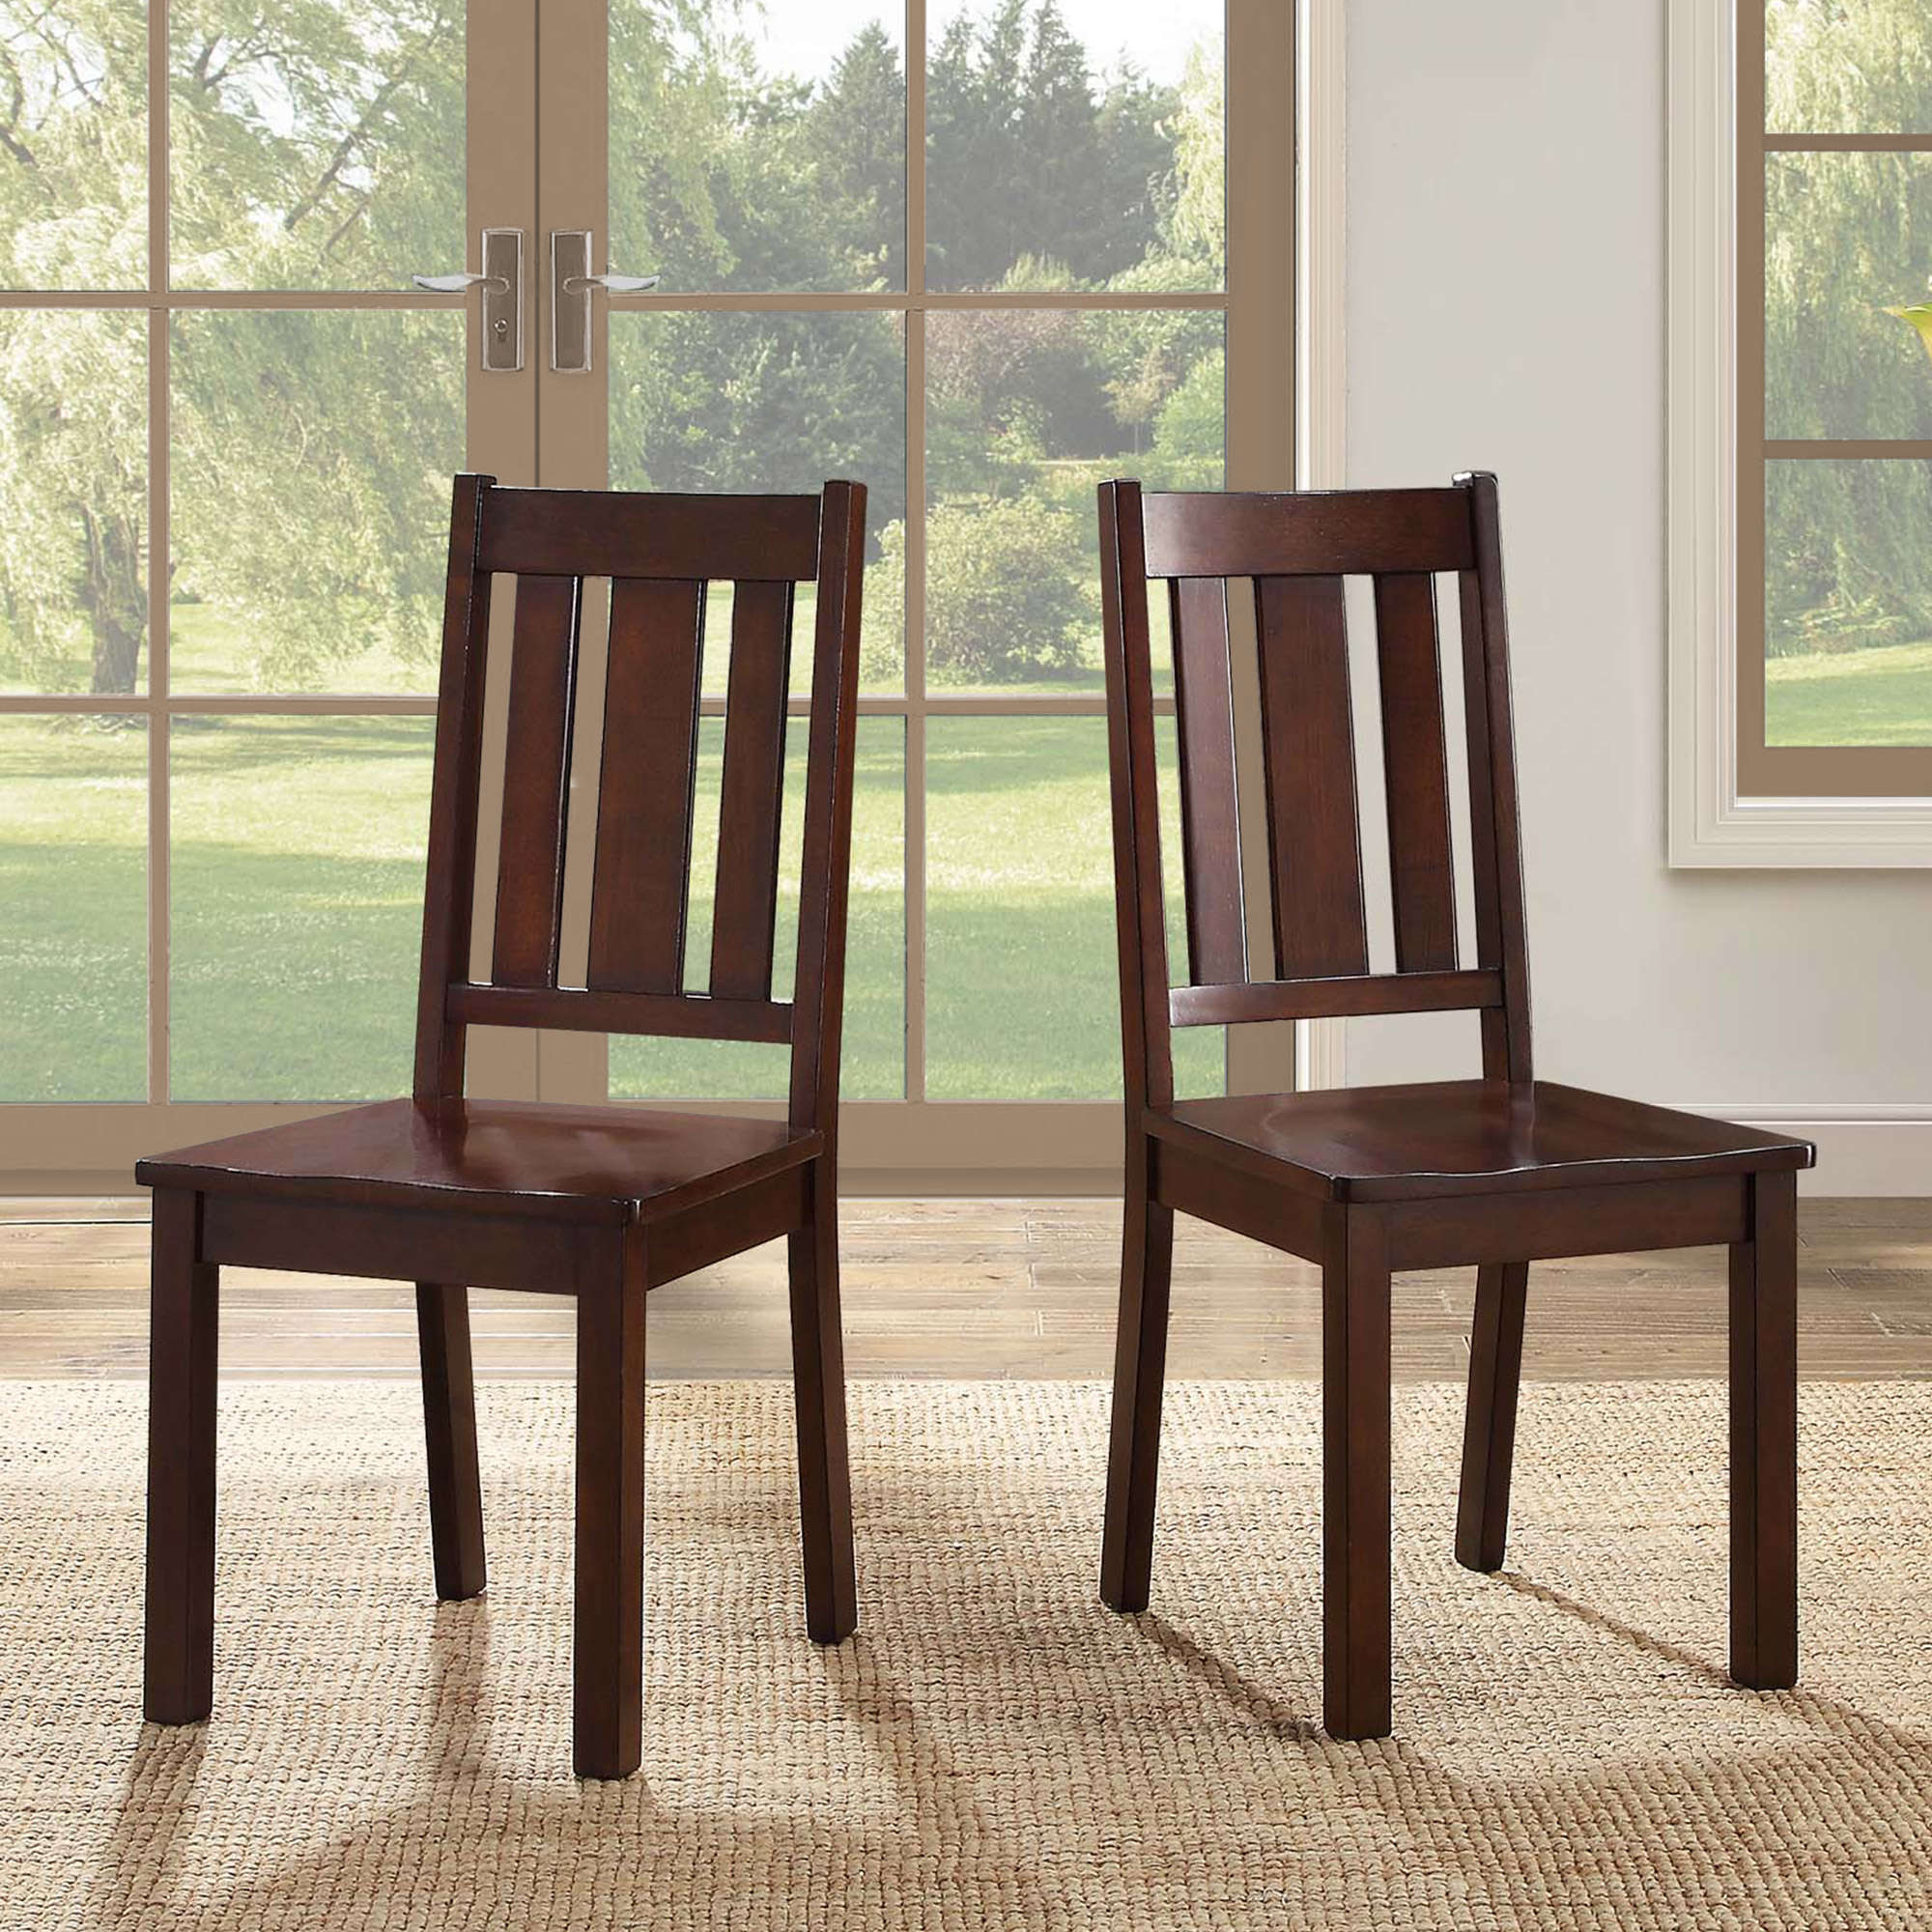 Better Homes and Gardens Bankston Dining Chairs, Set of 2, Mocha